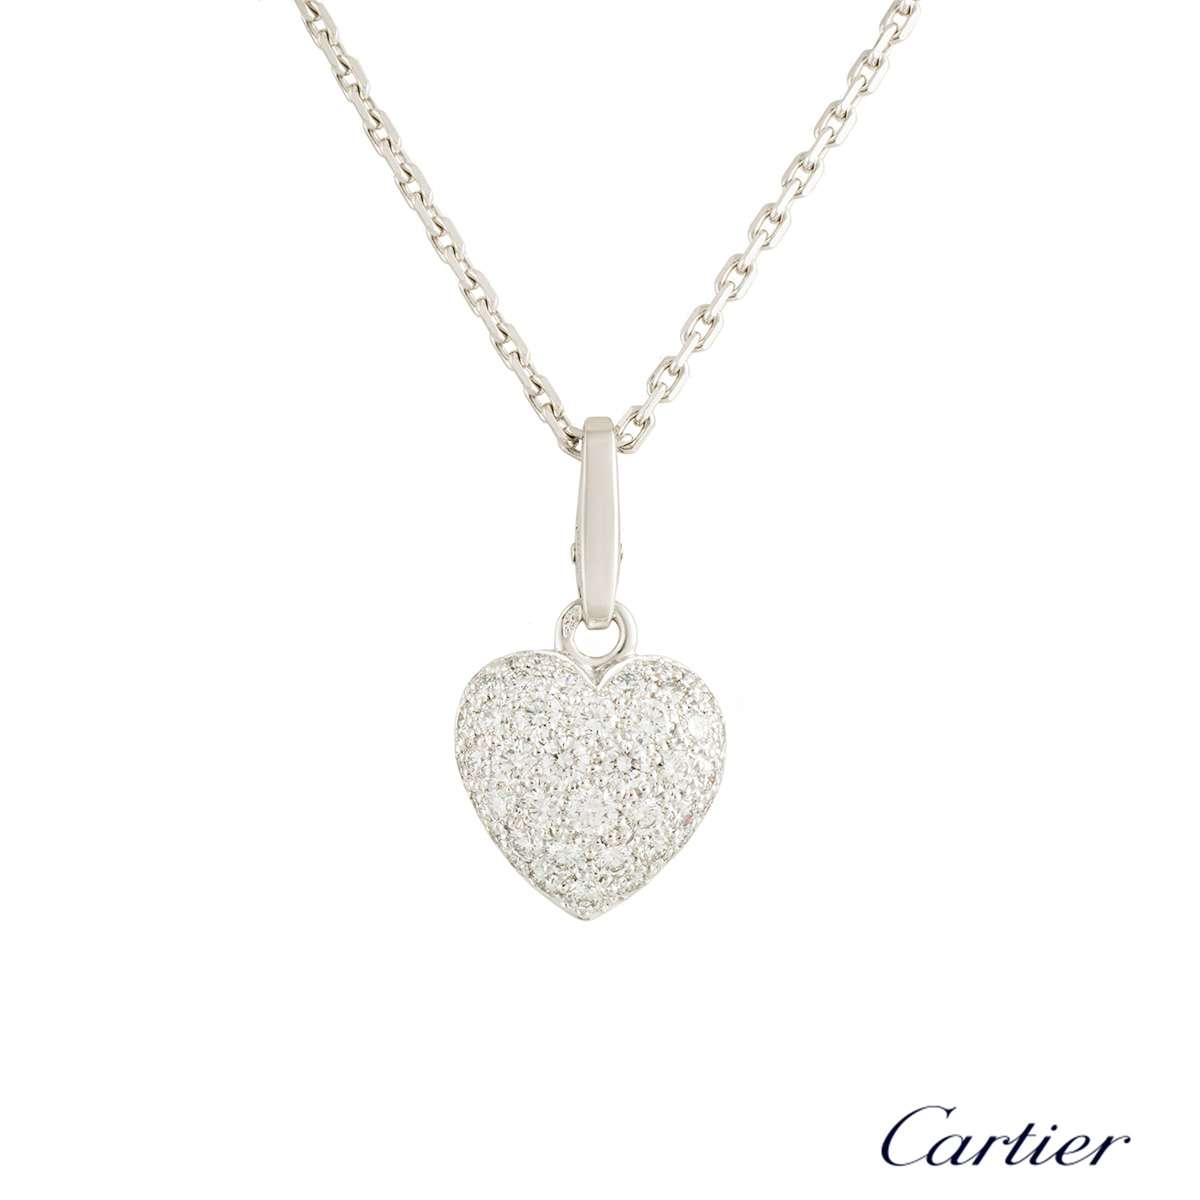 Cartier diamond heart pendant rich diamonds of bond street cartier diamond heart pendant aloadofball Images